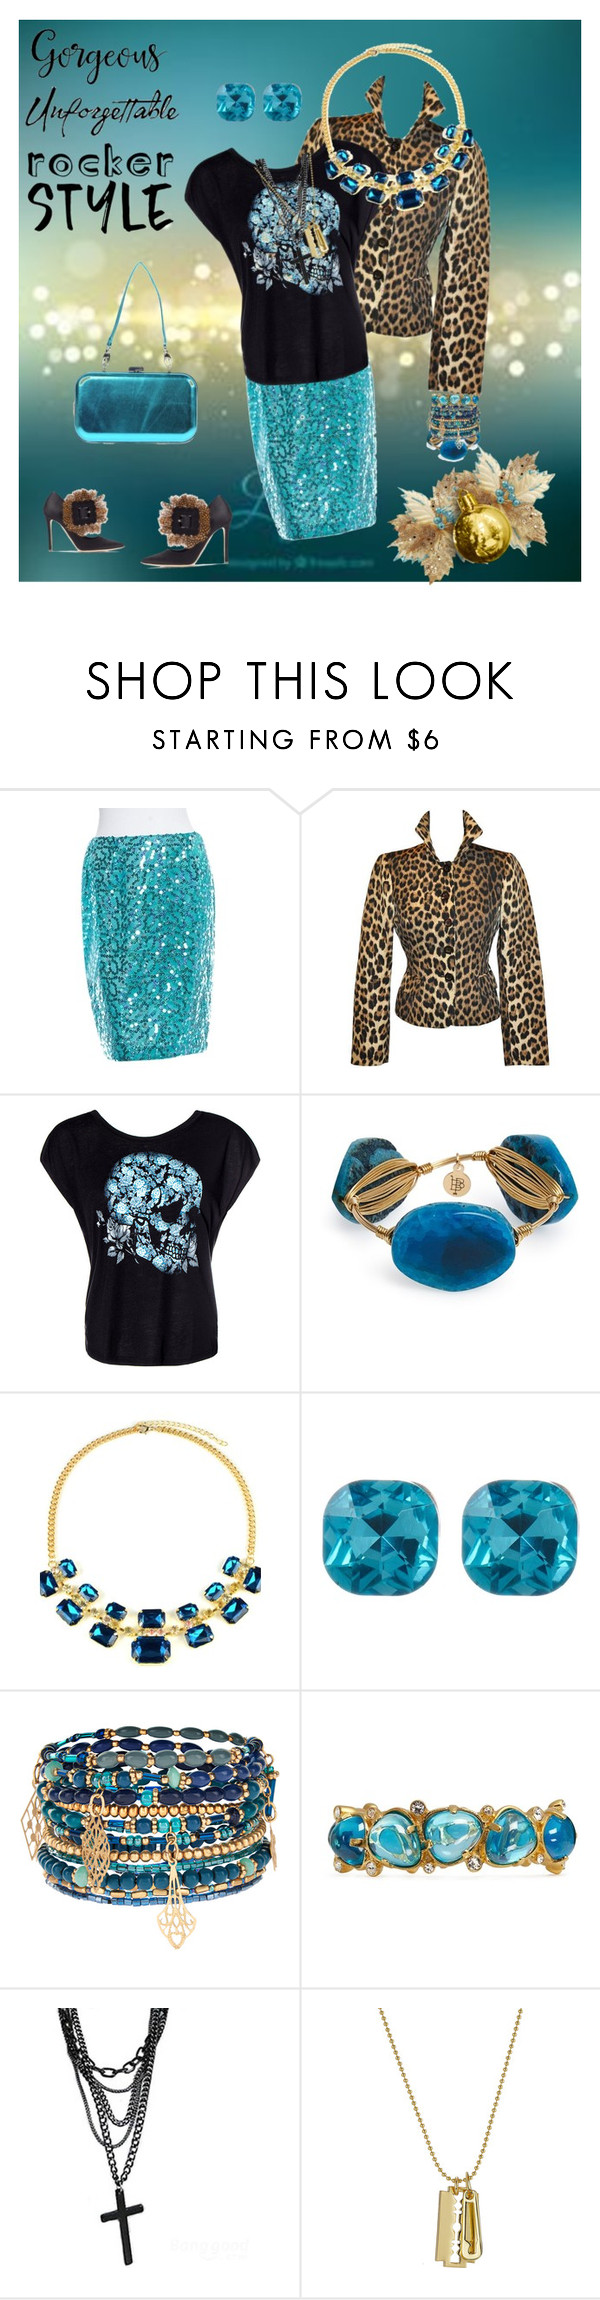 """""""Tiffany Blue Christmas"""" by izimaher on Polyvore featuring David Meister, Moschino, Metal Mulisha, Bourbon and Boweties, Emi Jewellery, Stella + Ruby, Accessorize, Kenneth Jay Lane, McQ by Alexander McQueen and Antonella Romano"""